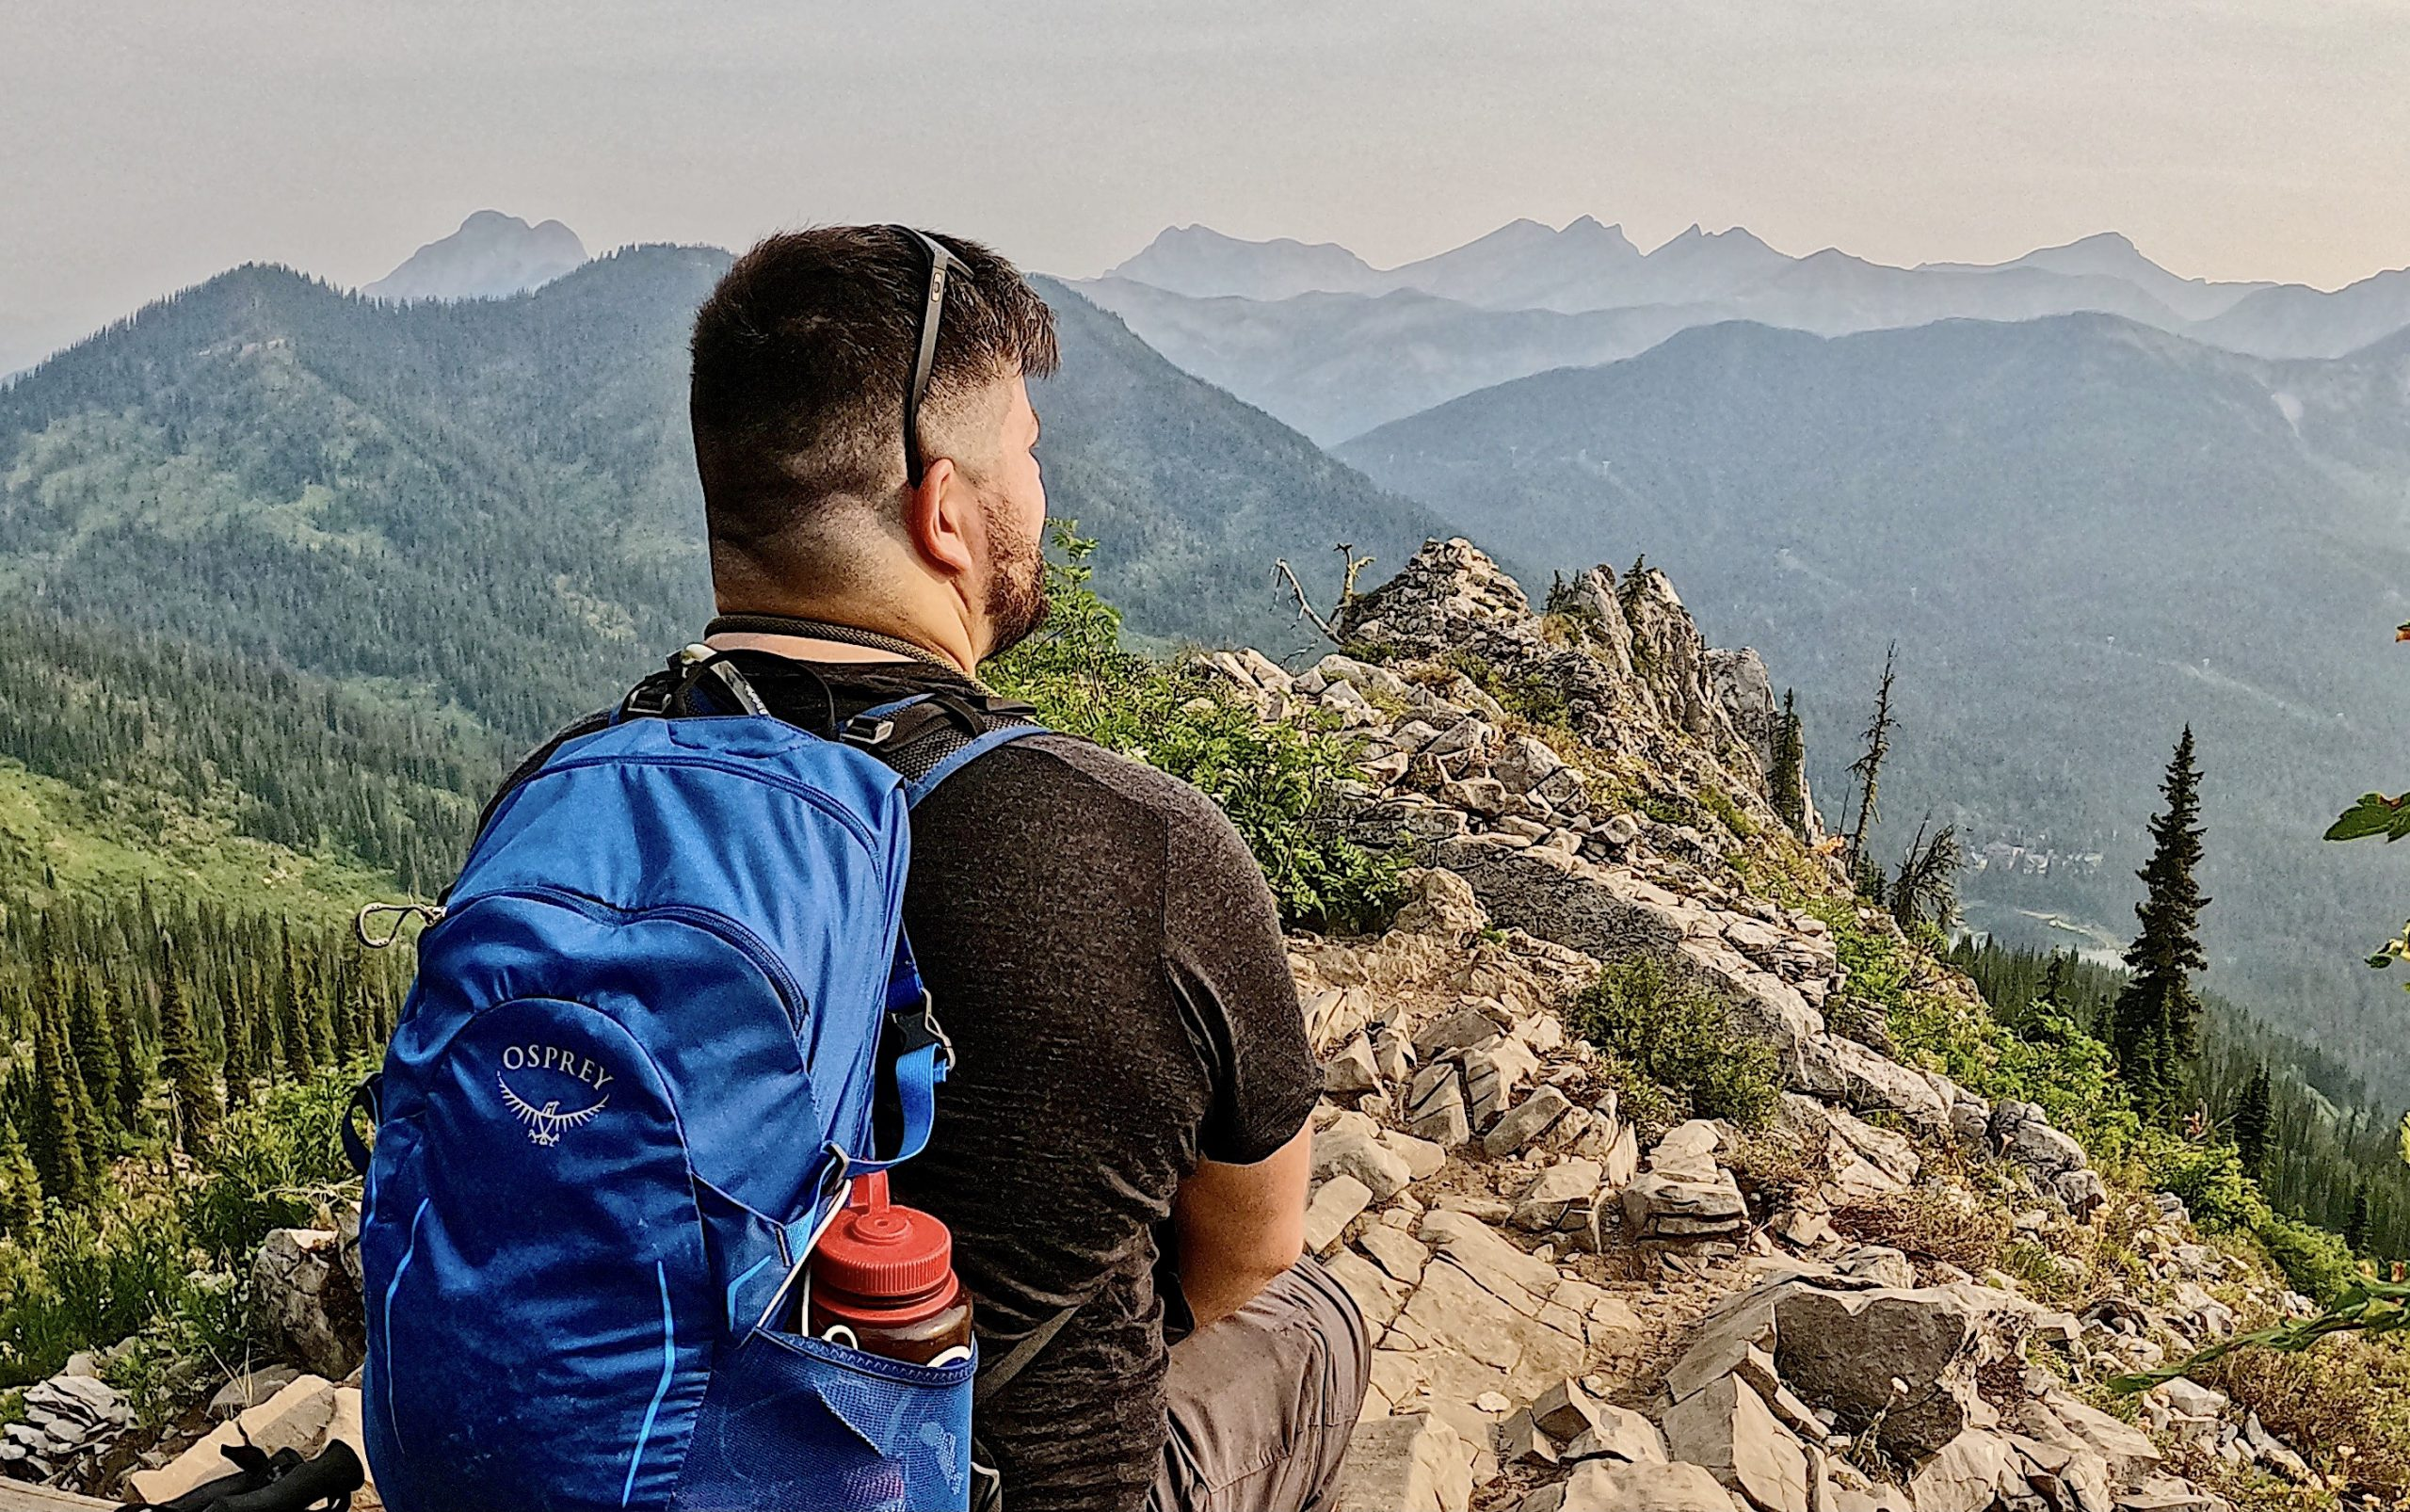 Hiking in Fernie, BC at the Spineback Trail via @outandacross